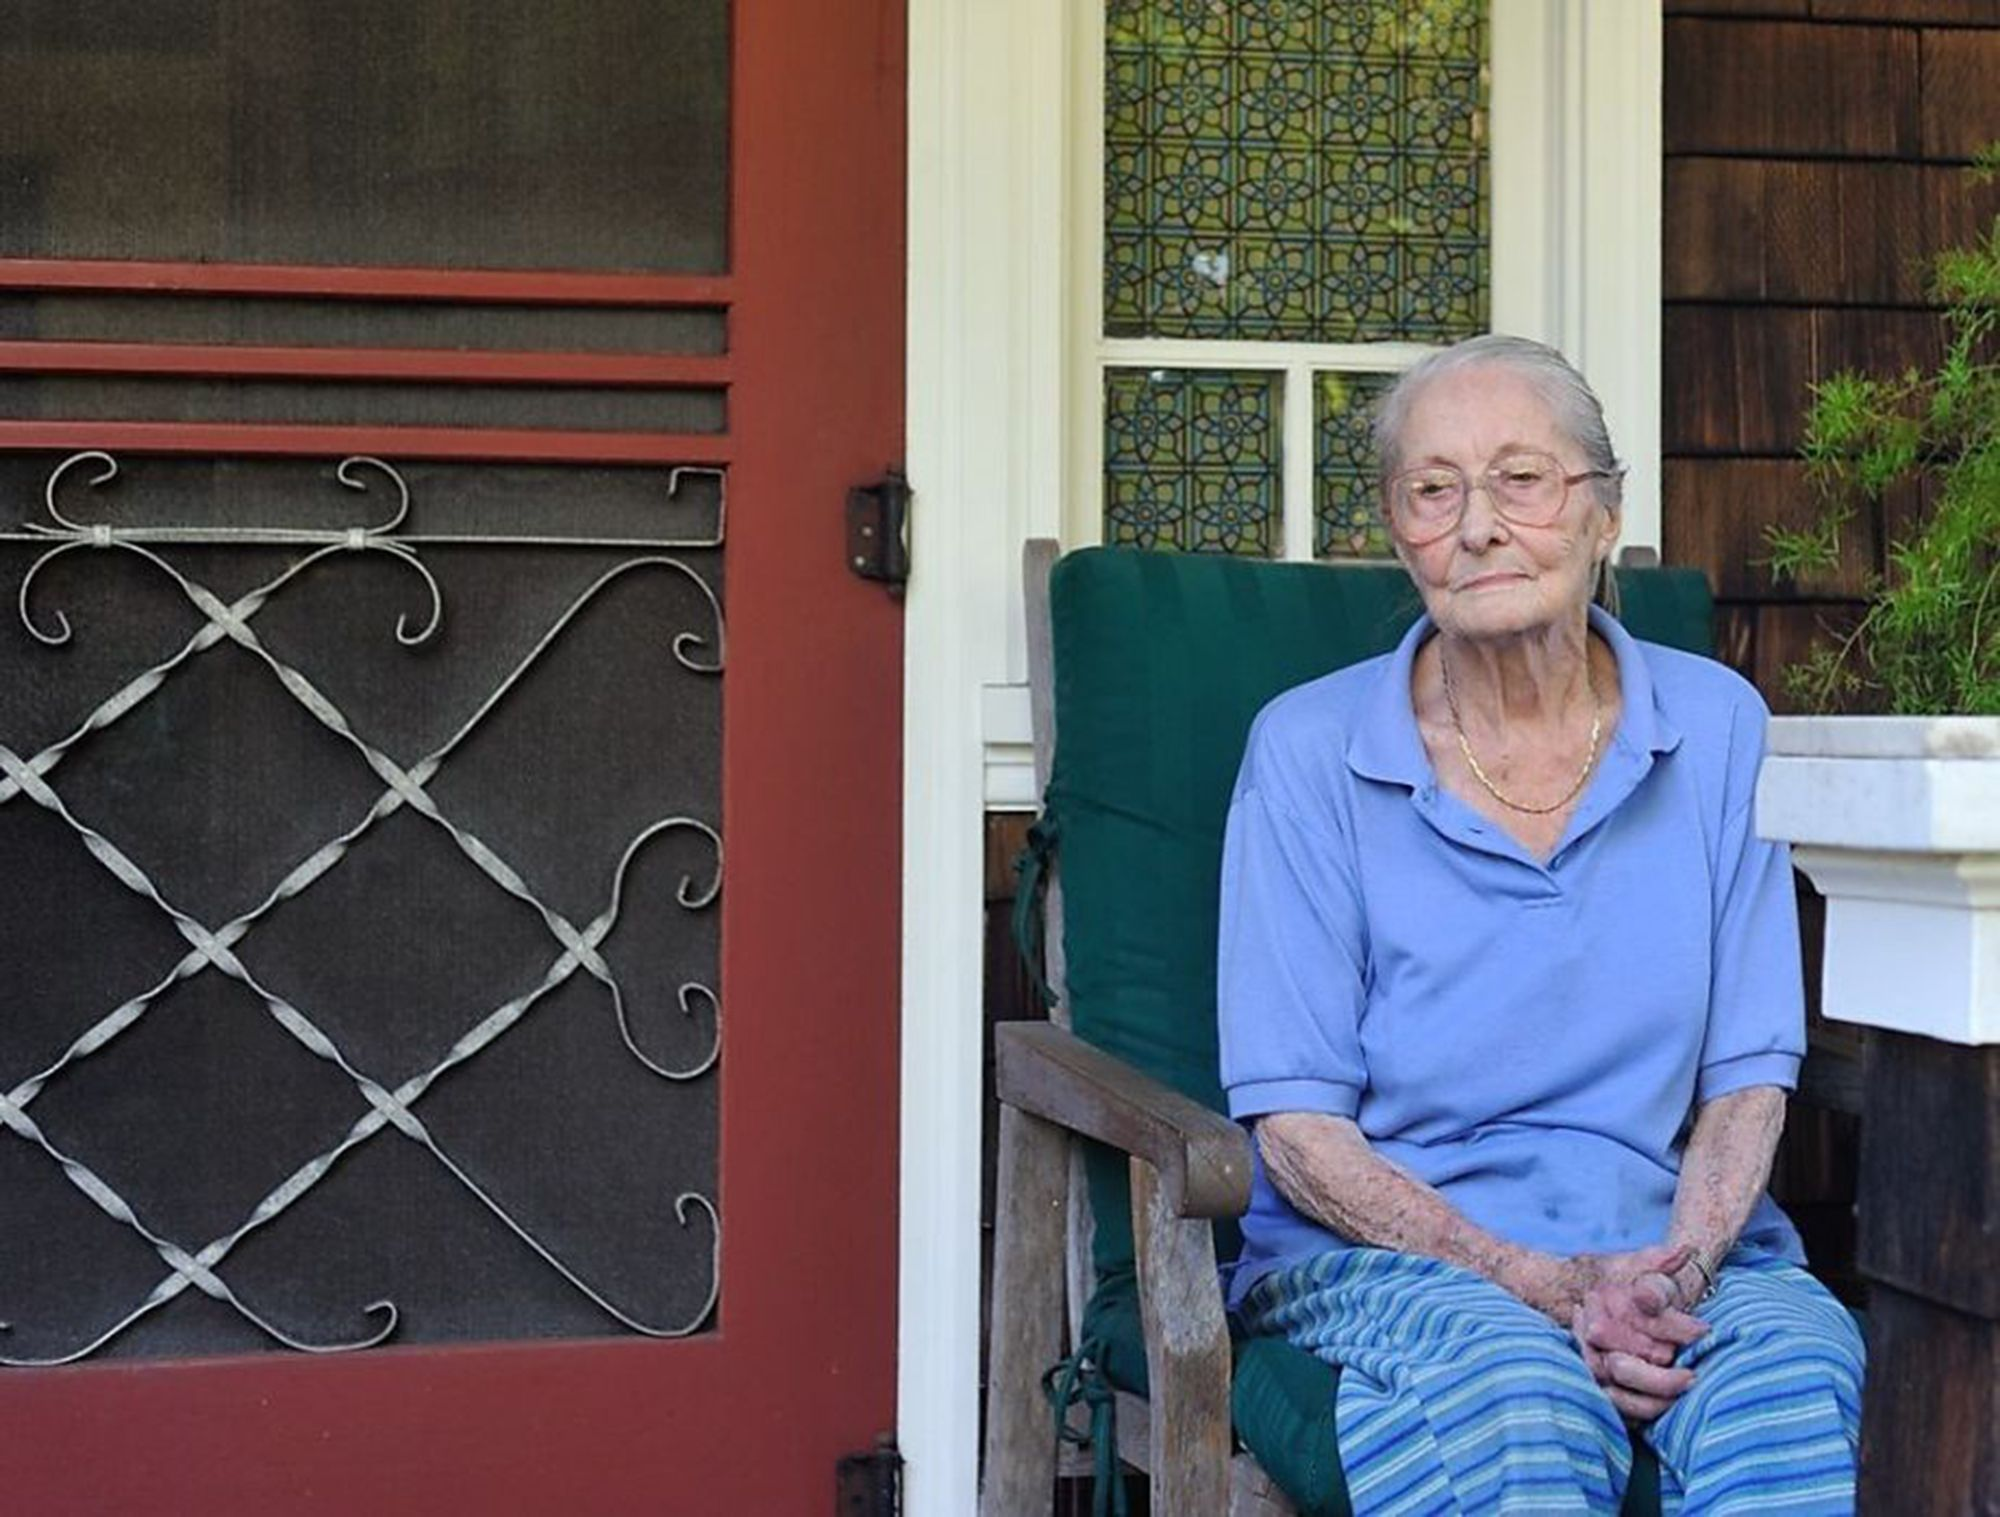 A 97-Year-Old Woman Is Being Evicted After 66 Years in Her Home